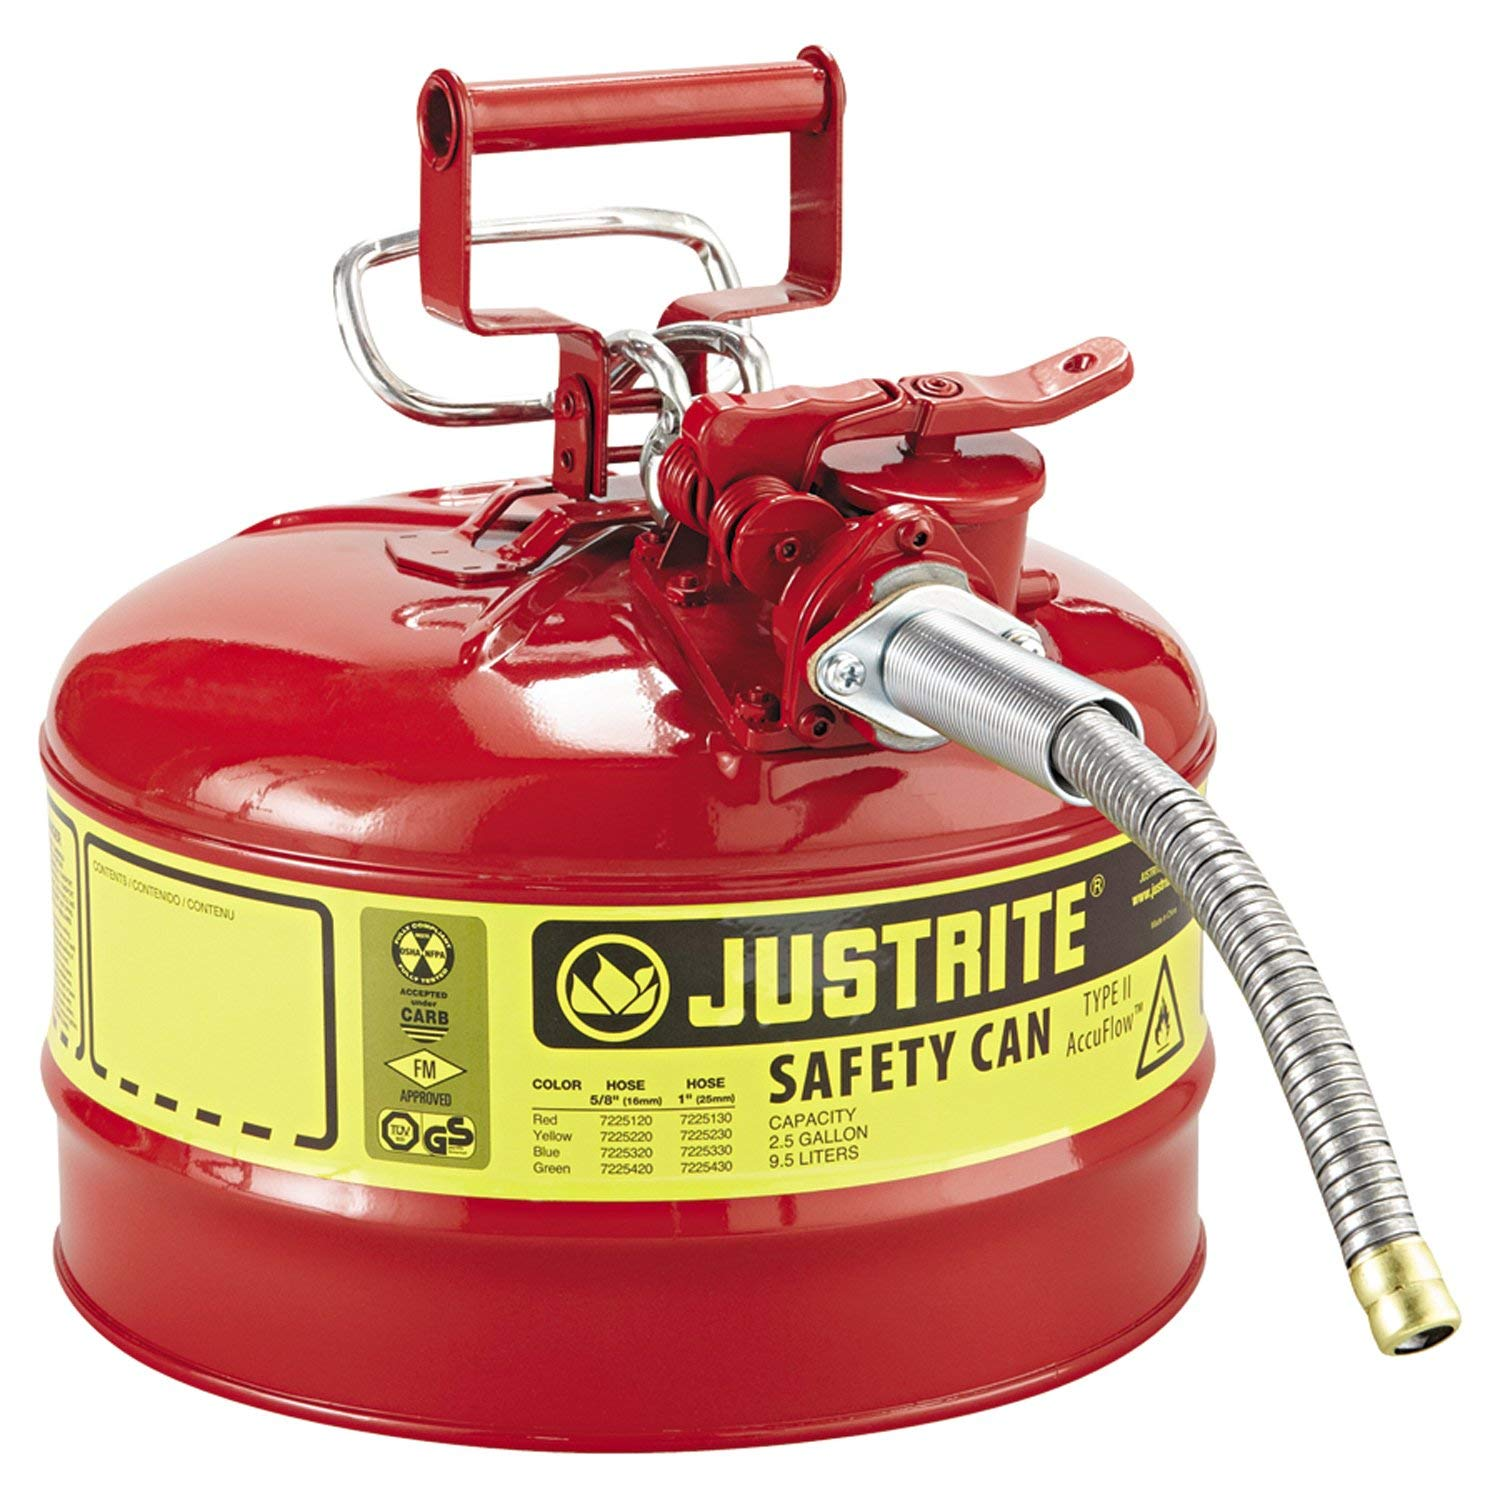 7250120 AccuFlow 2.5 Gallon, 11.75 in OD x 17.50 in H Galvanized Steel Type II Red Safety Can With 5/8 in Flexible Spout